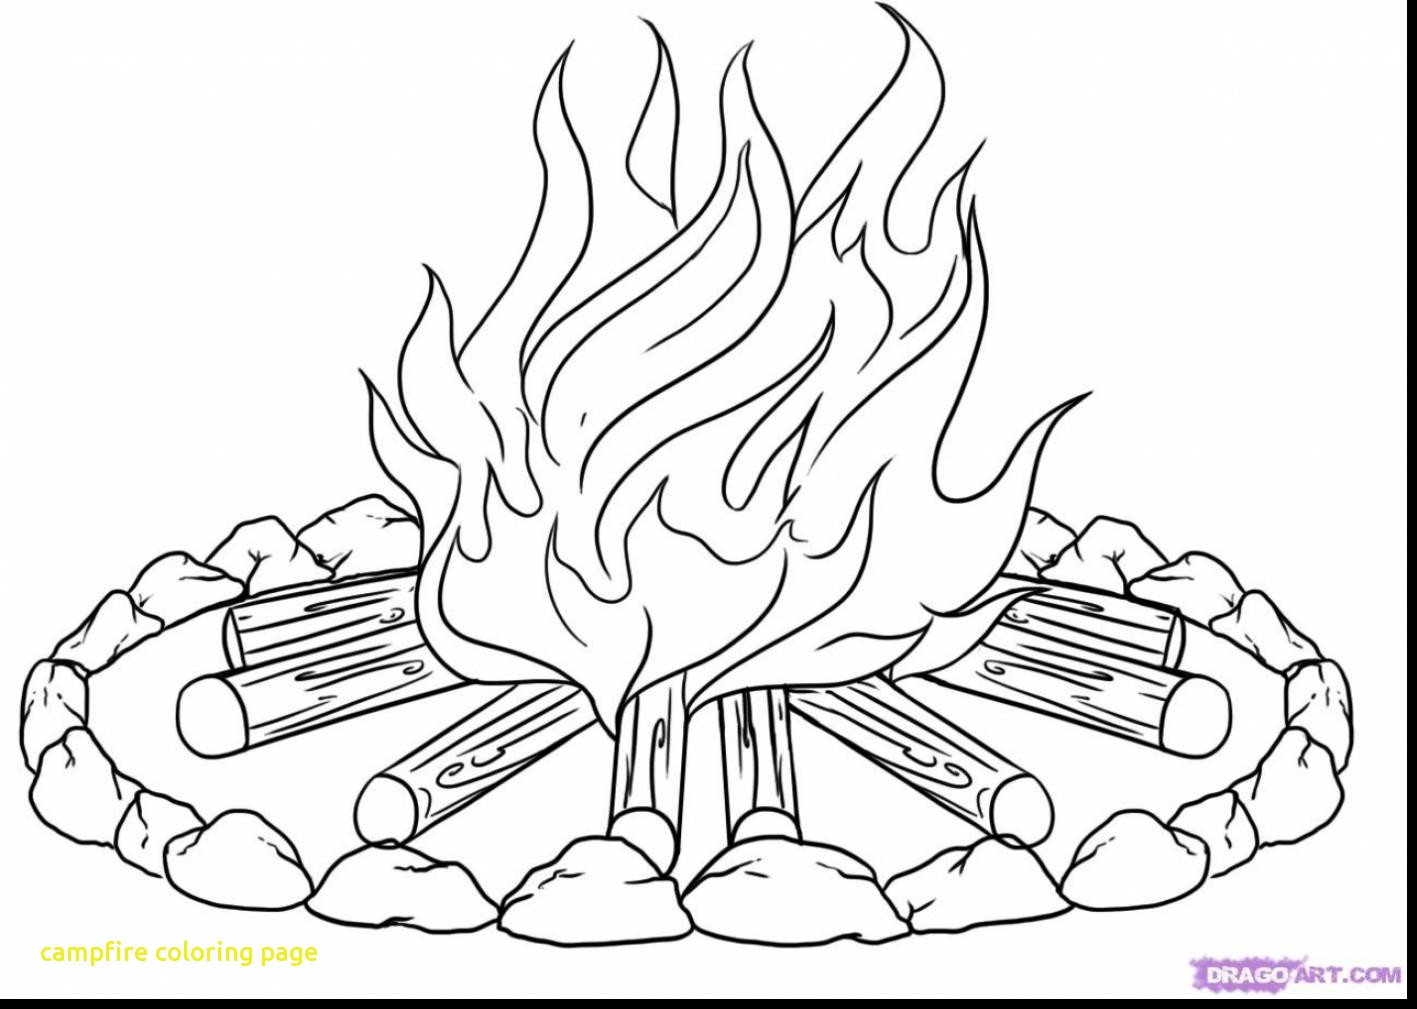 1417x1009 Terrific Campfire Coloring Page Preschool In Tiny Camping Tent